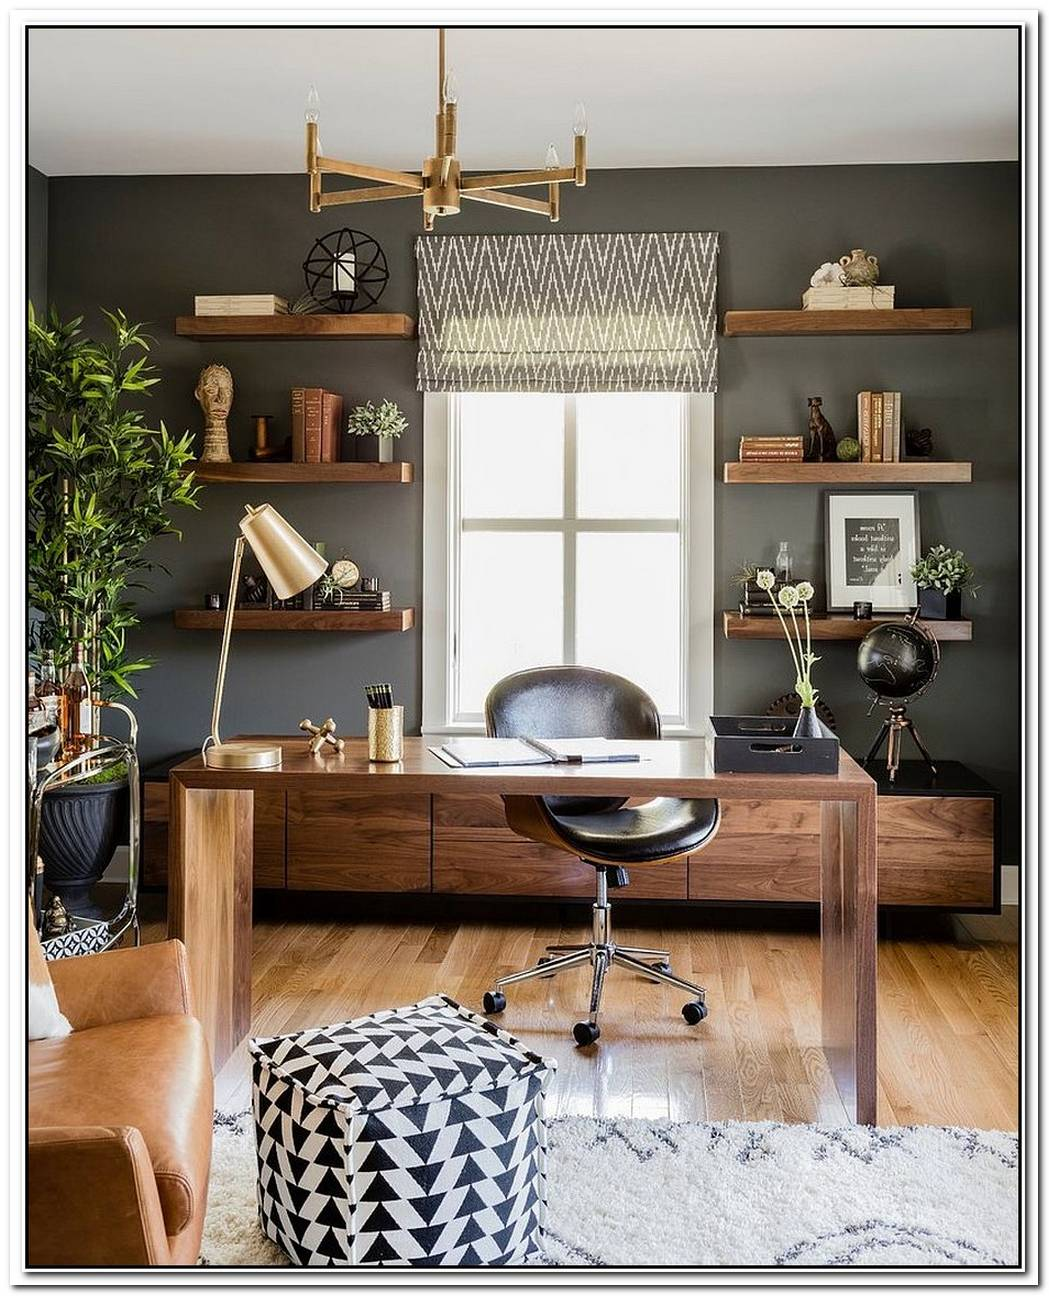 Trendy Accents For Your Home OfficeFrom Gold To Gorgeous Prints